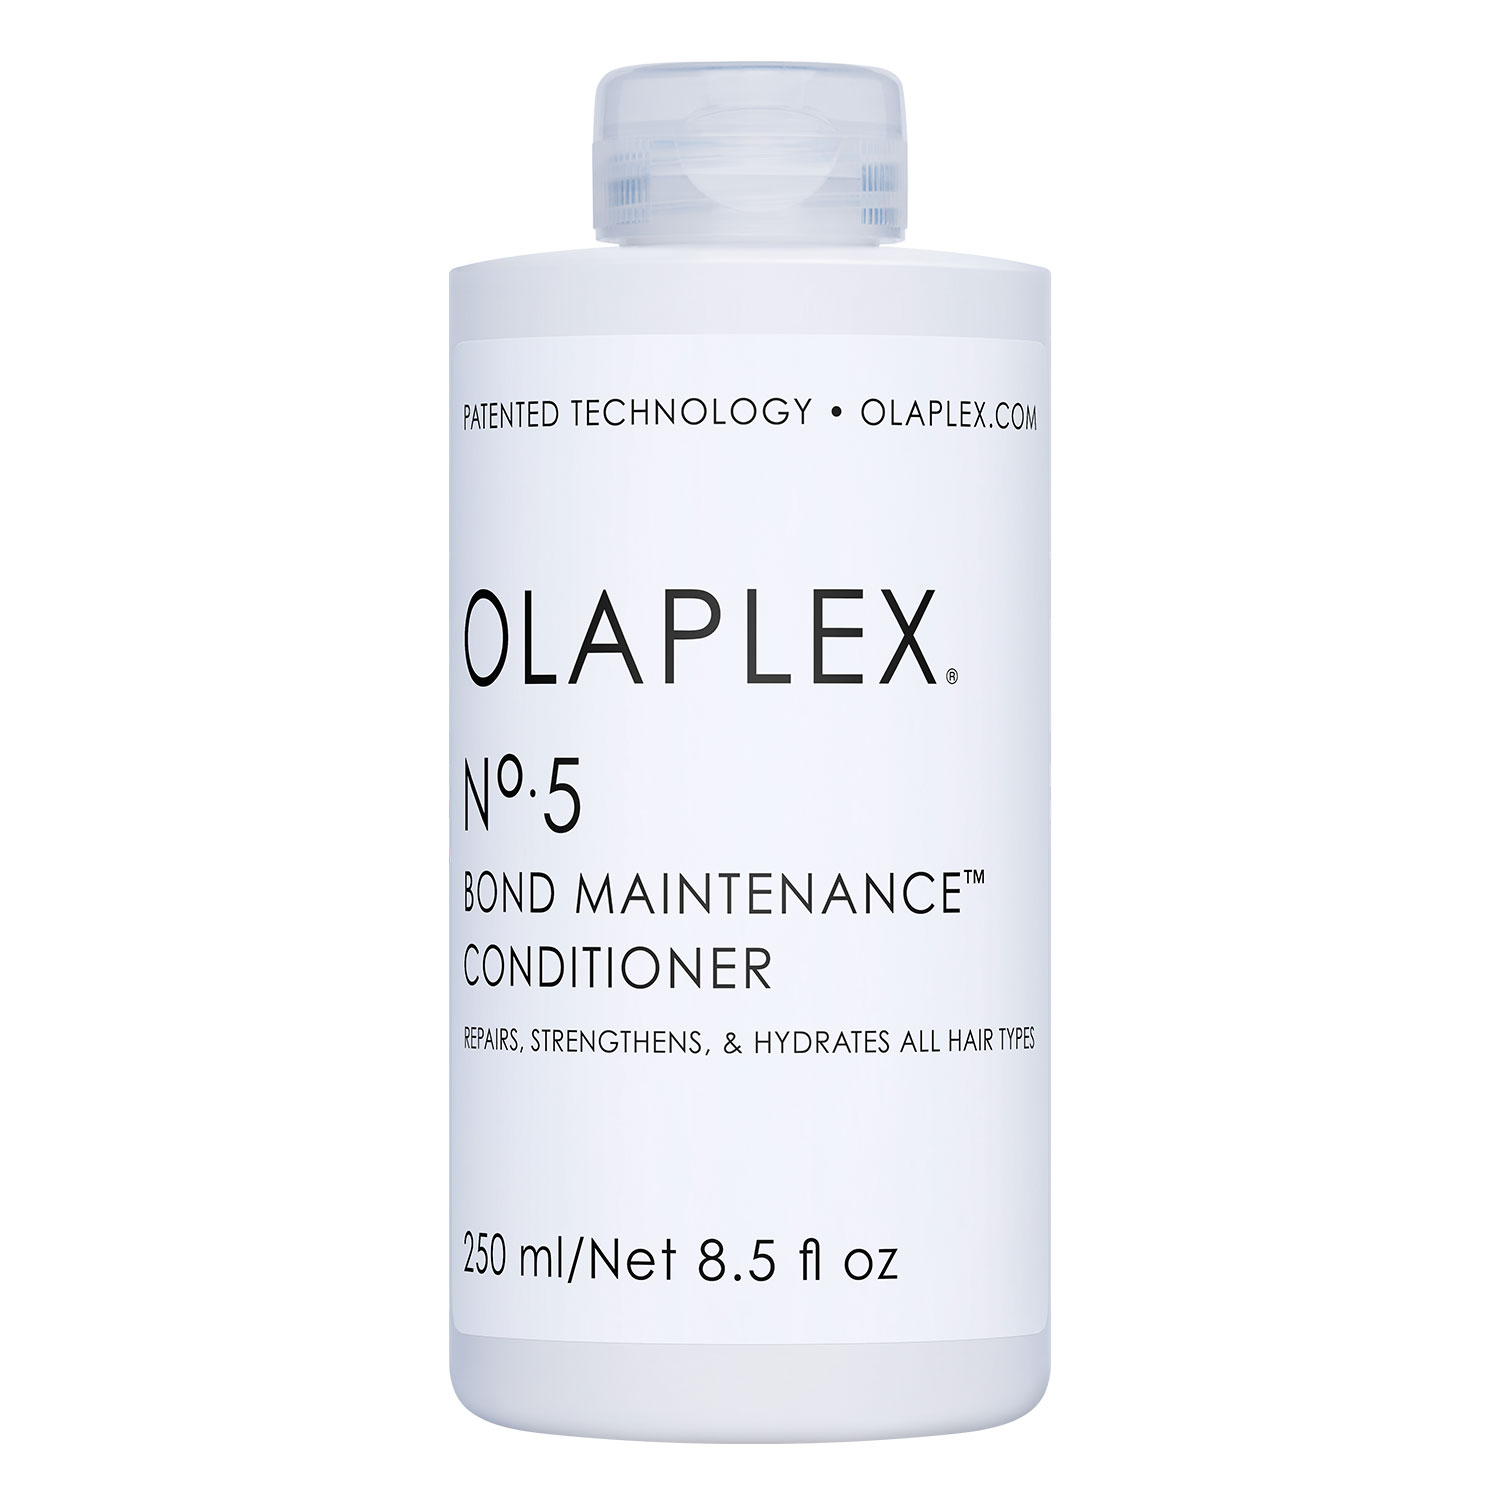 Olaplex - Bond Maintenance Conditioner No. 5 - 250ml